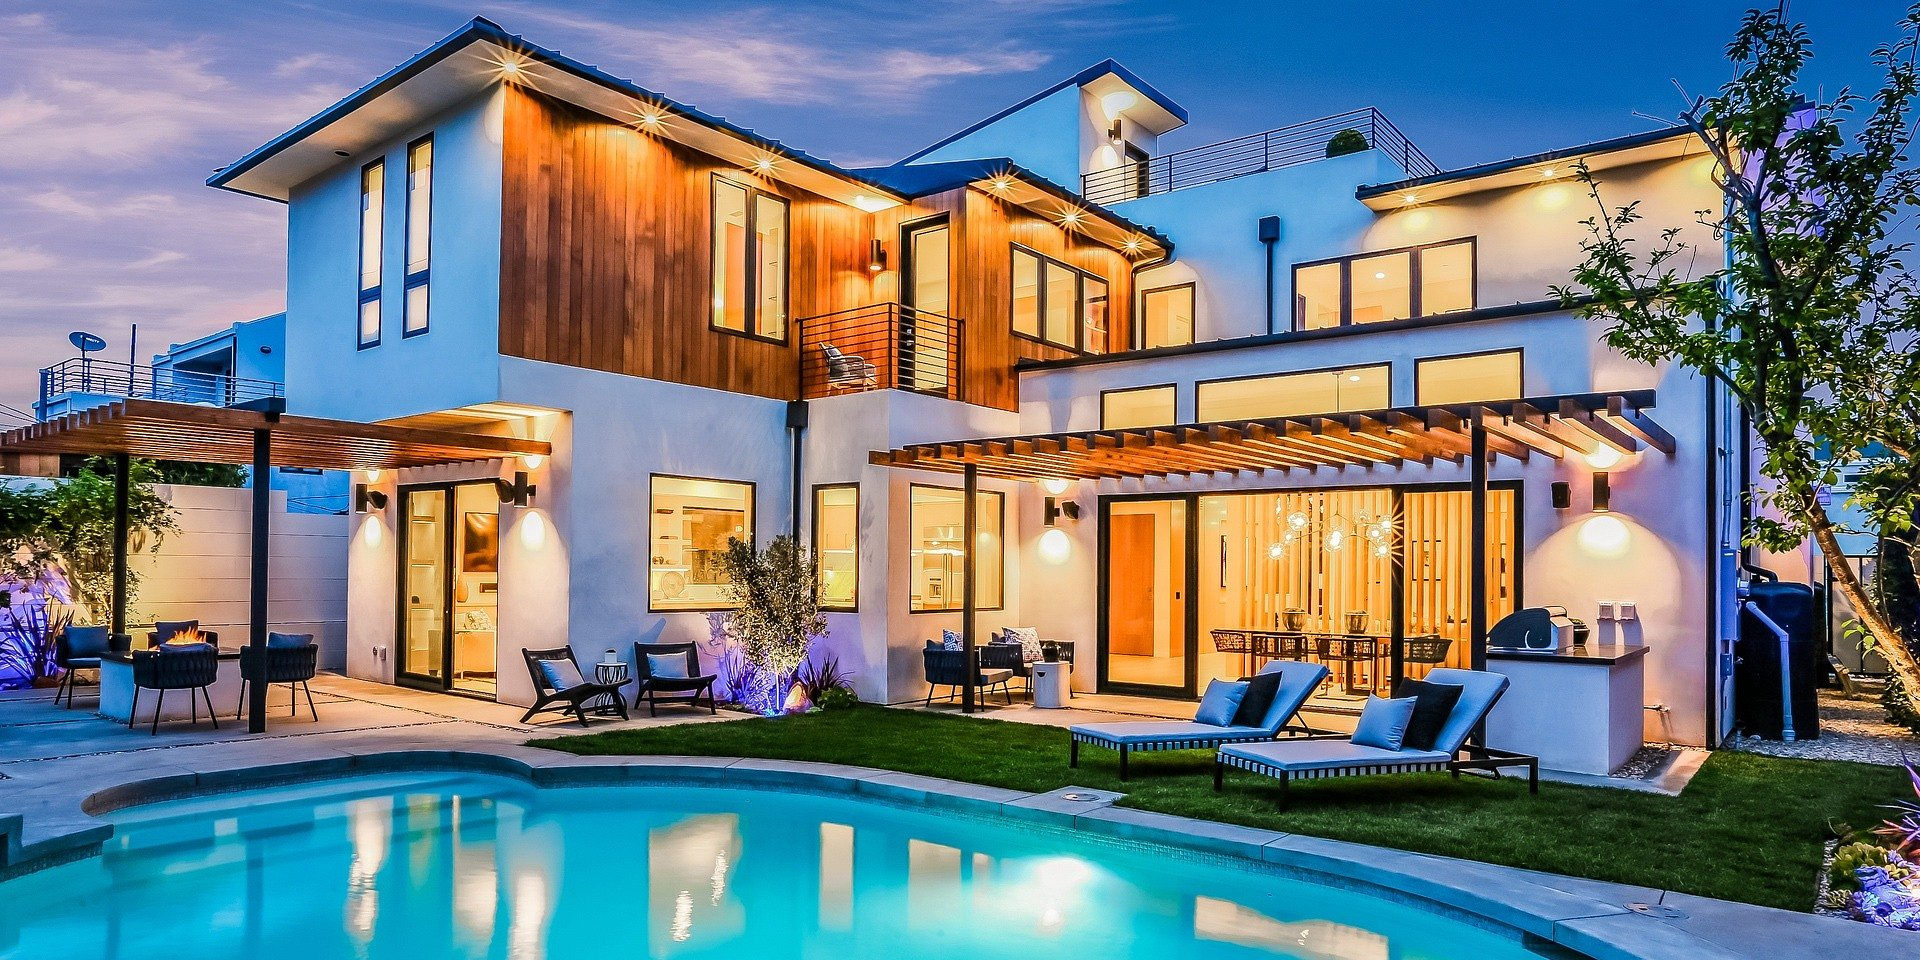 Coldwell Banker Residential Brokerage Lists Los Angeles Property for $3.295 Million